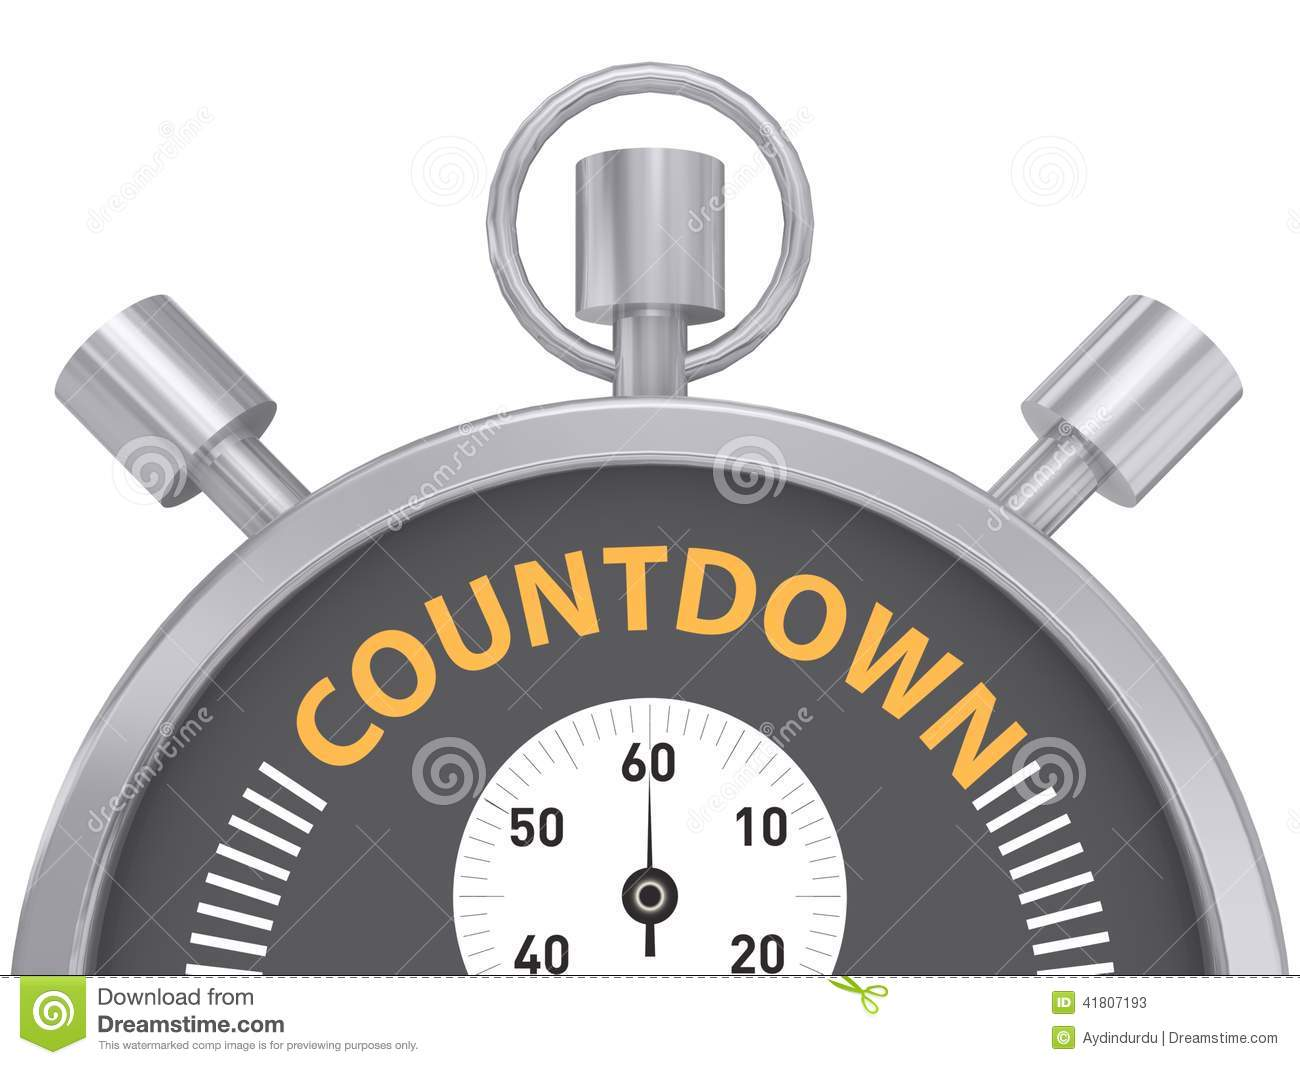 Illustration of a countdown stopwatch isolated on a white background.